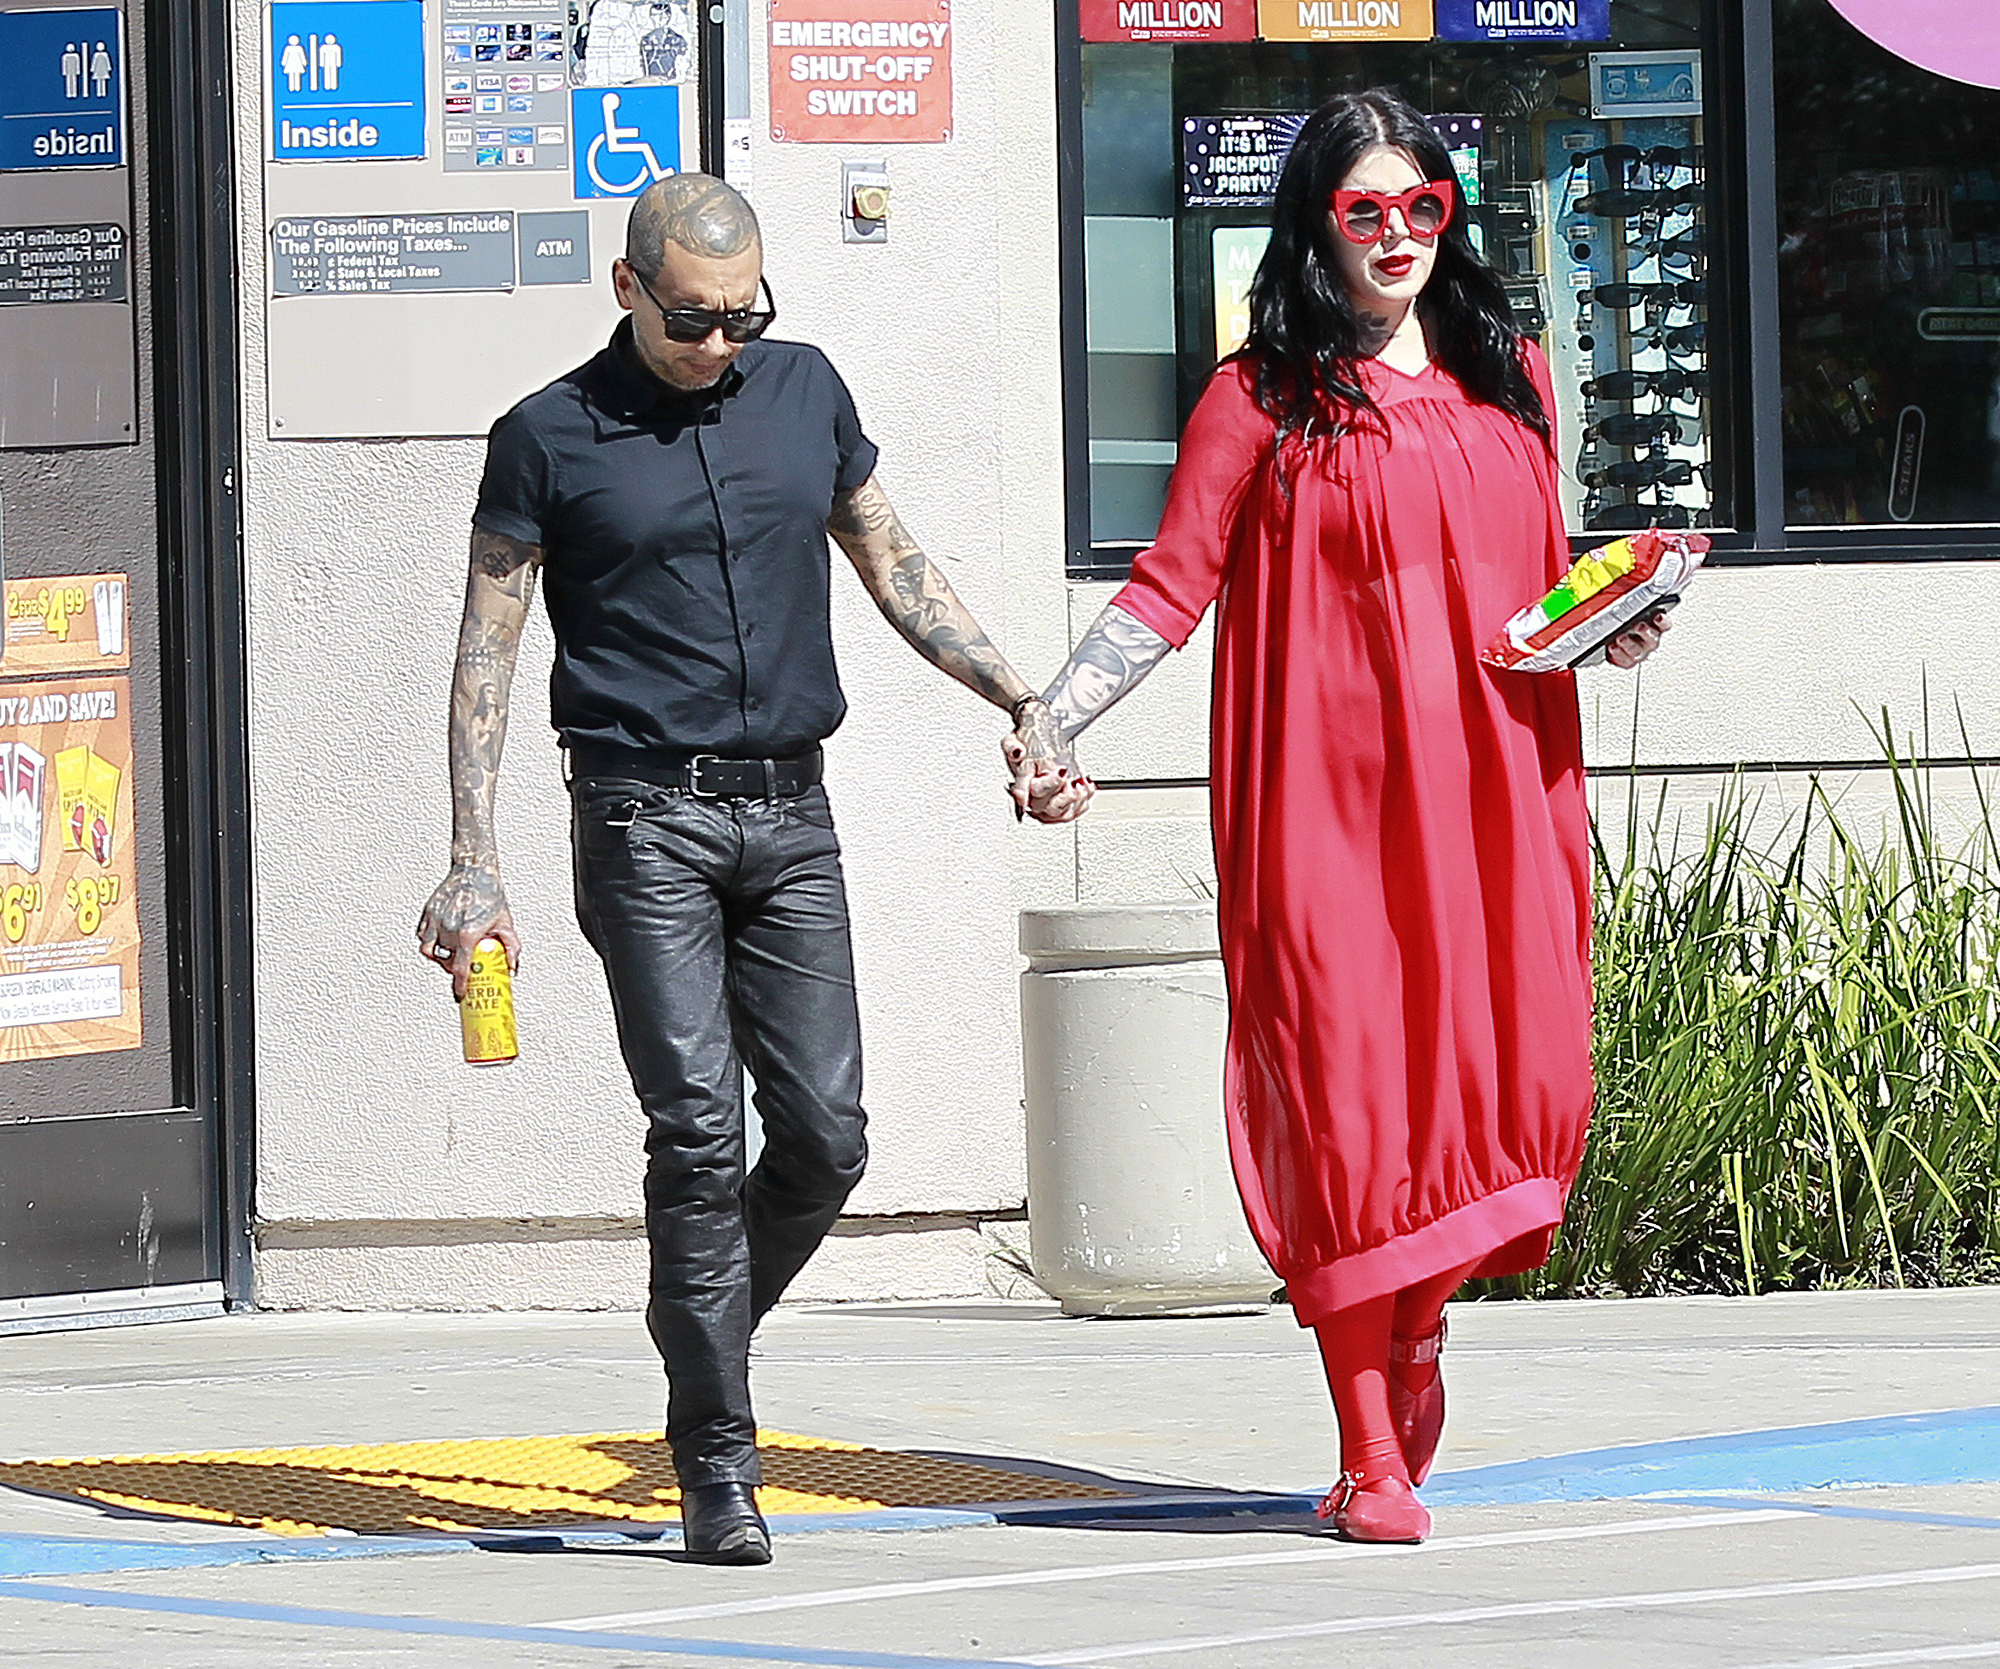 EXCLUSIVE: Newly married mom to be Kat Von D and her husband Leafar Seyer make a stop for snacks and drinks as they head off for their honeymoon